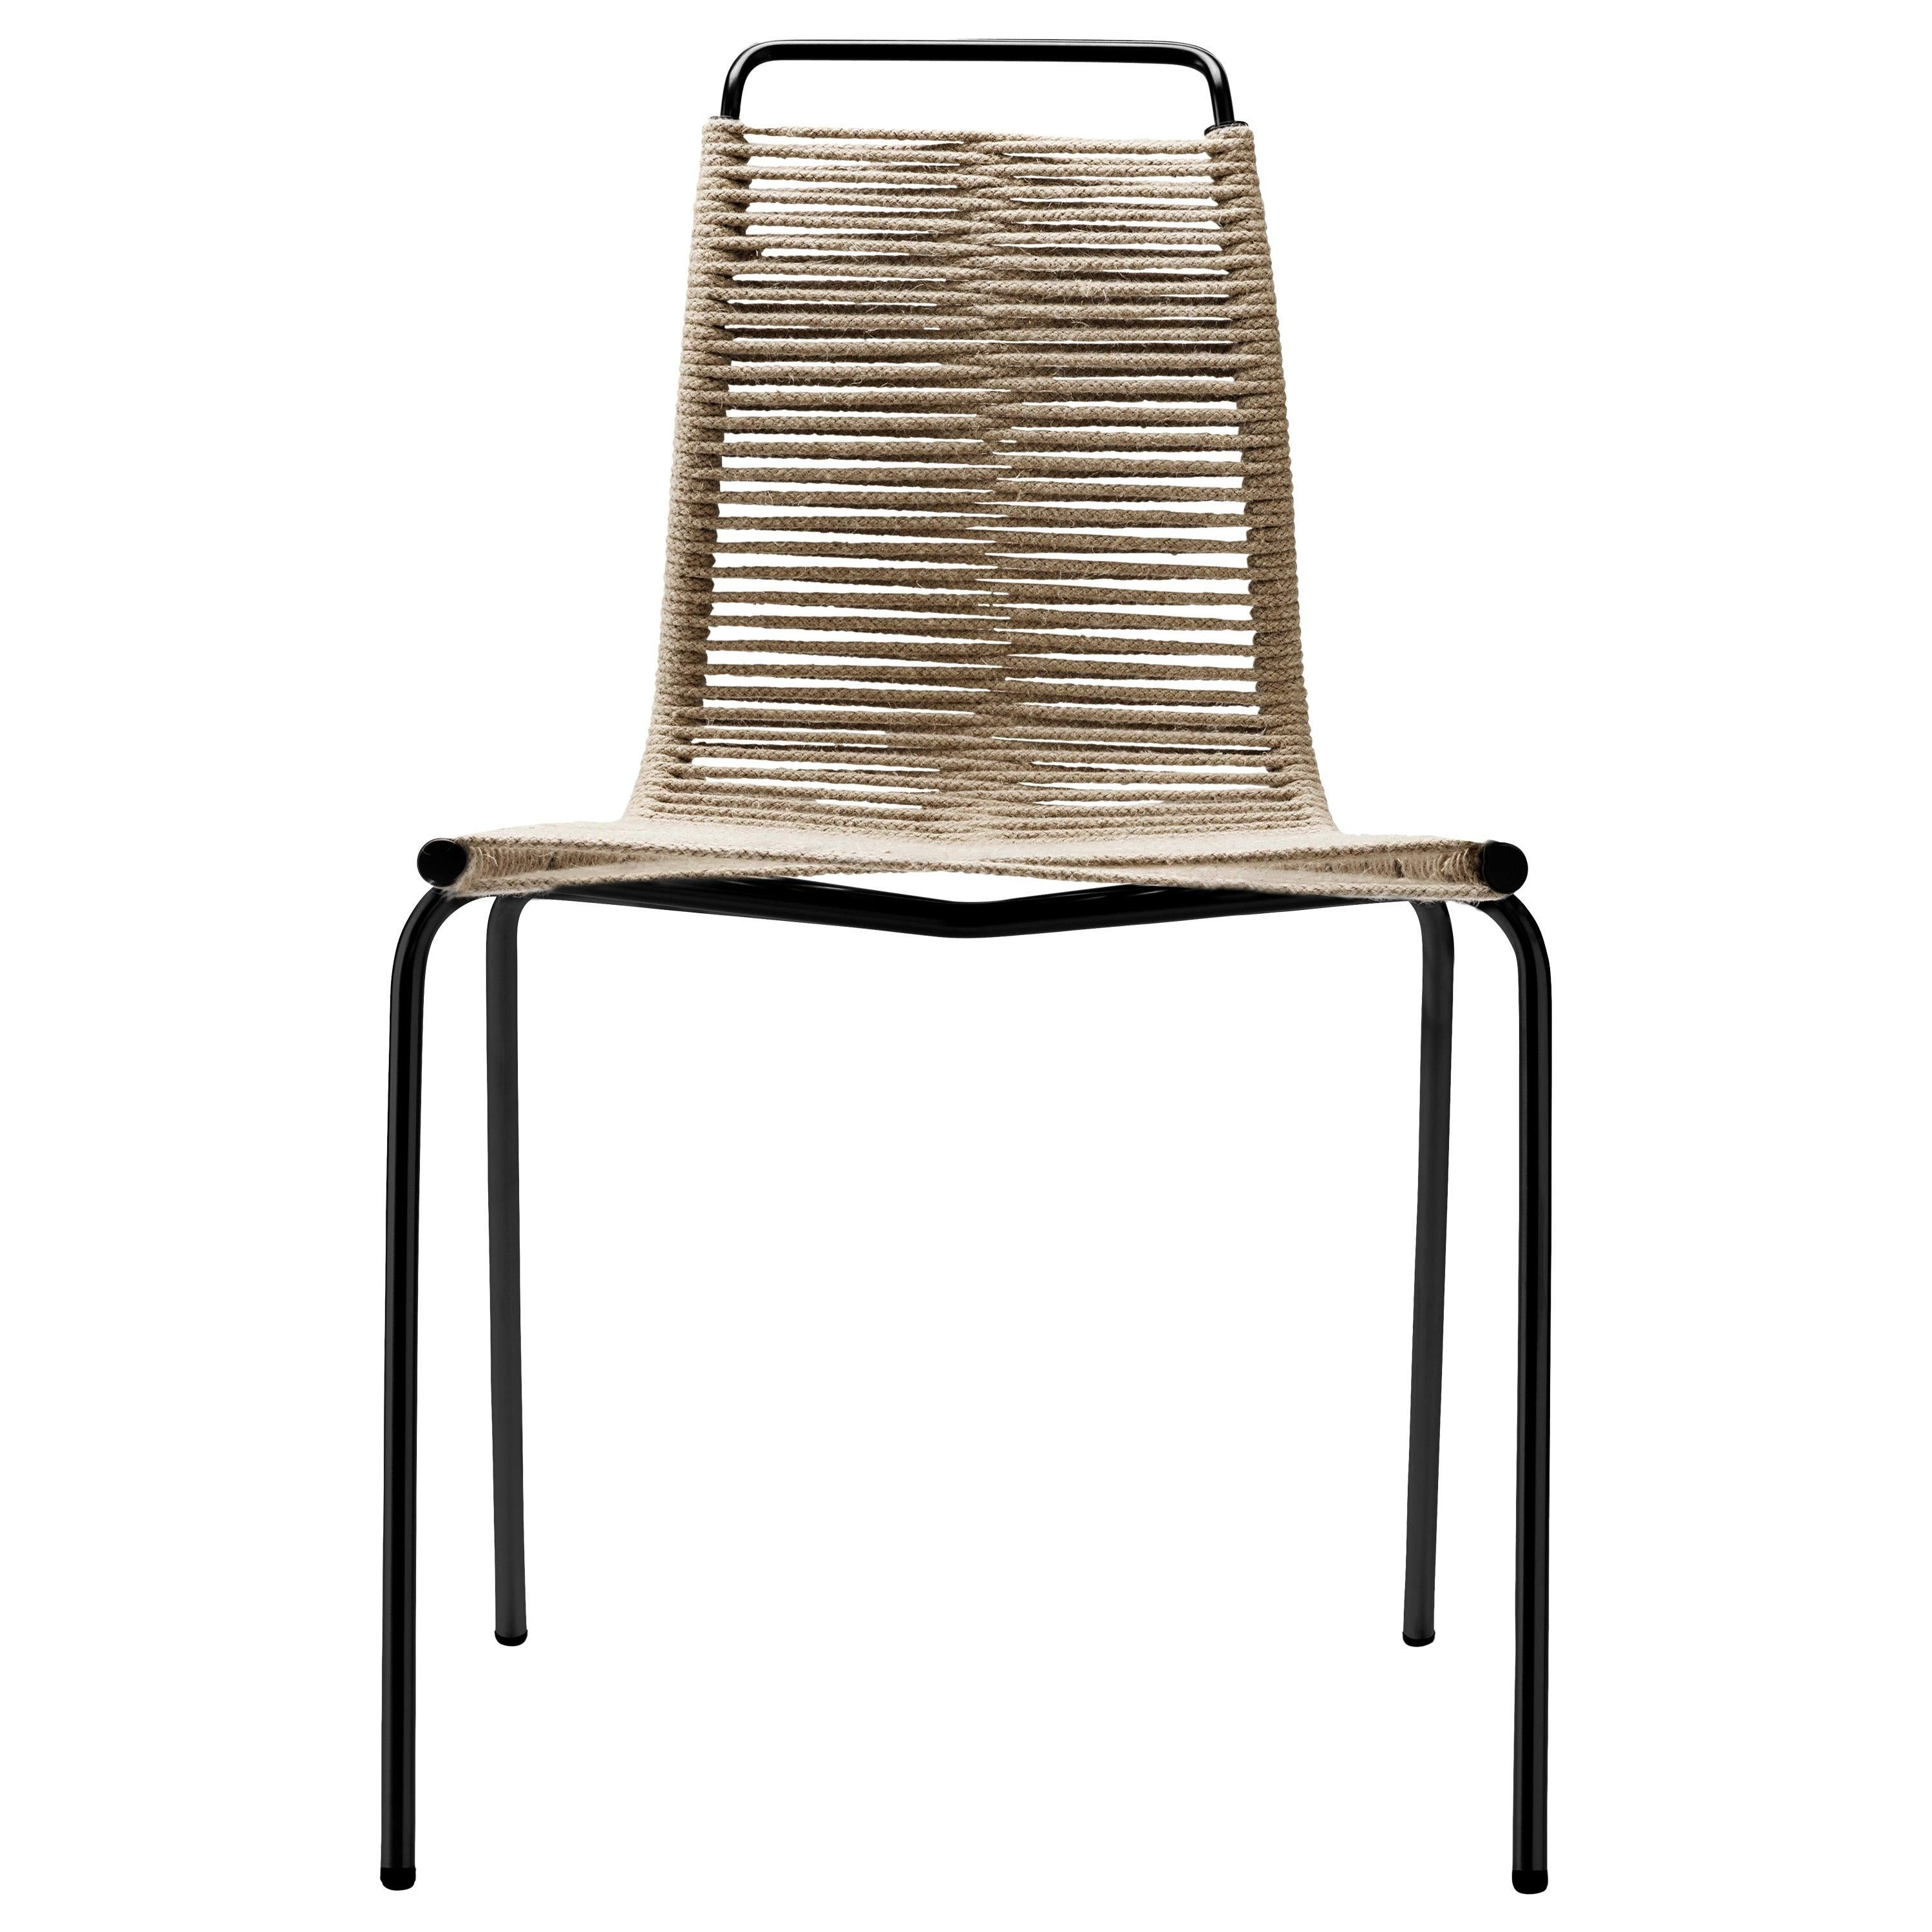 PK1 Dining Chair in Black Steel Base with Natural Flag Halyard by Poul Kjærholm